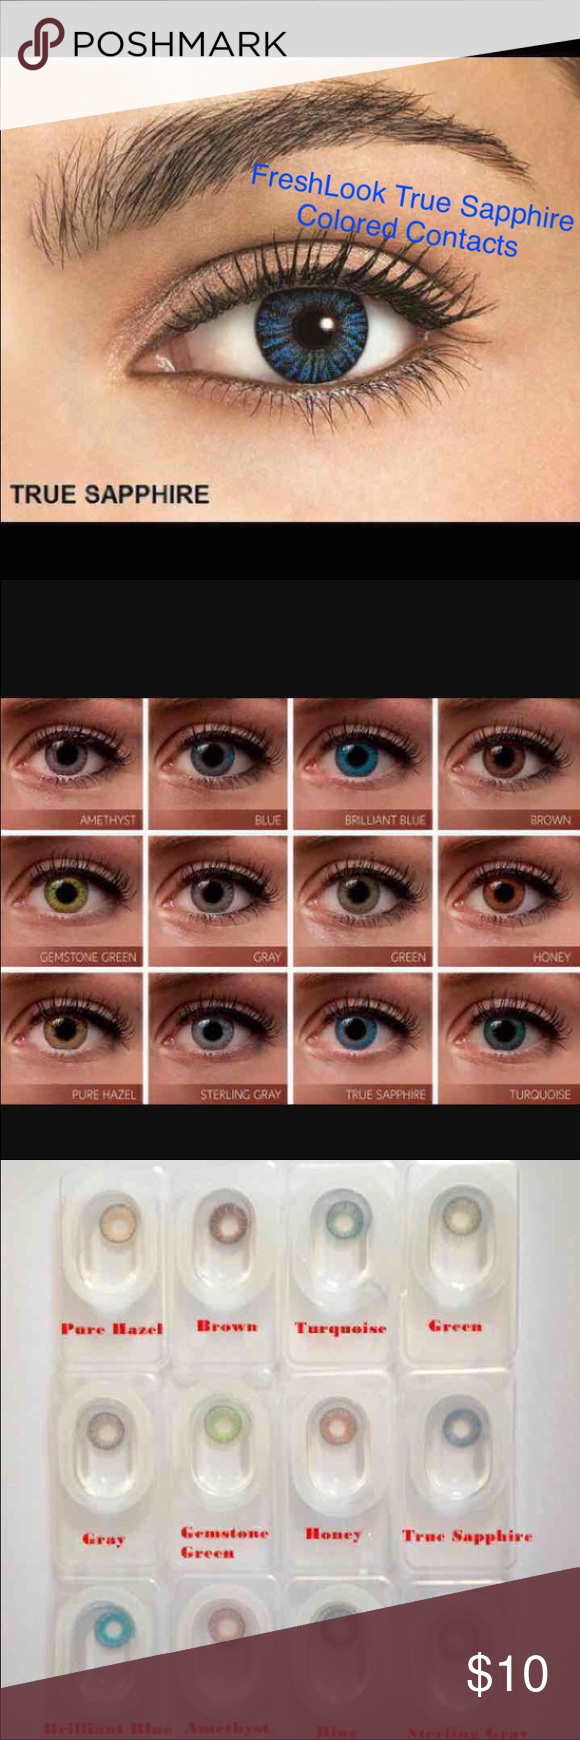 1 pair freshlook true sapphire colored contacts 1 pair reusable 2